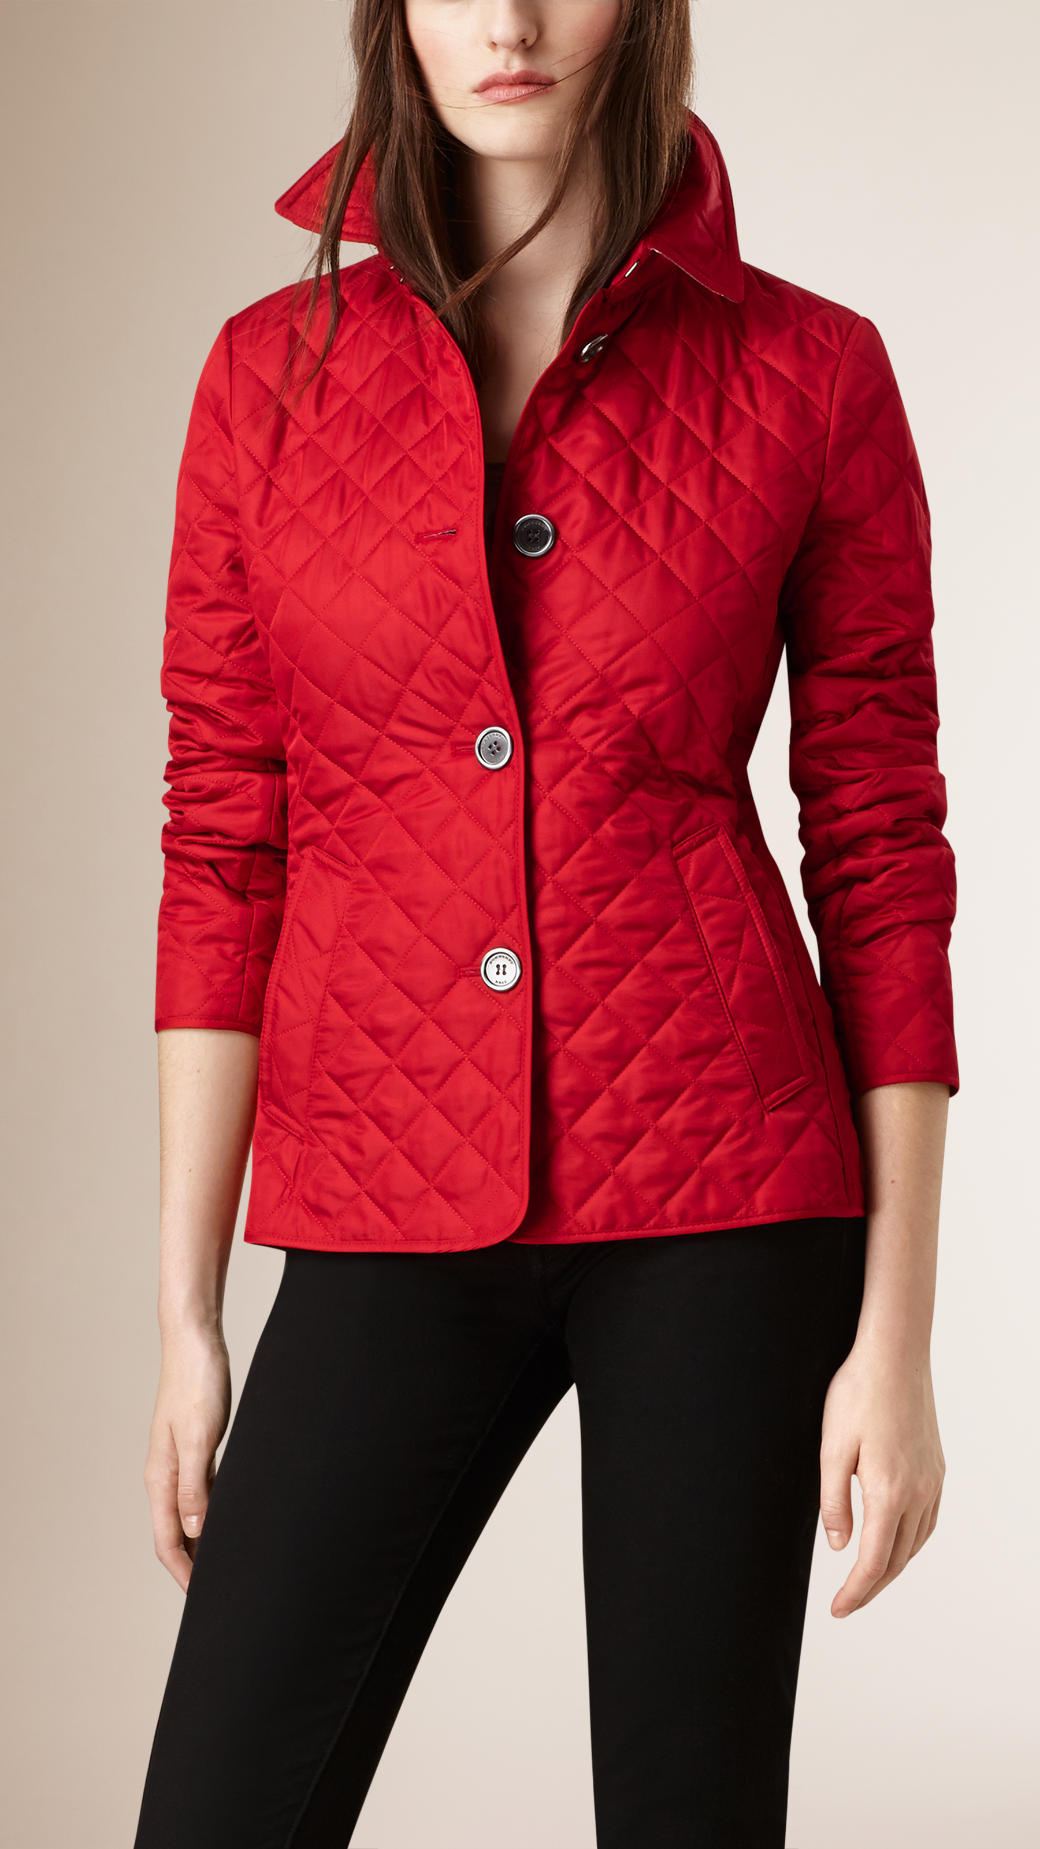 Buy low price, high quality jacket red quilted with worldwide shipping on fluctuatin.gq